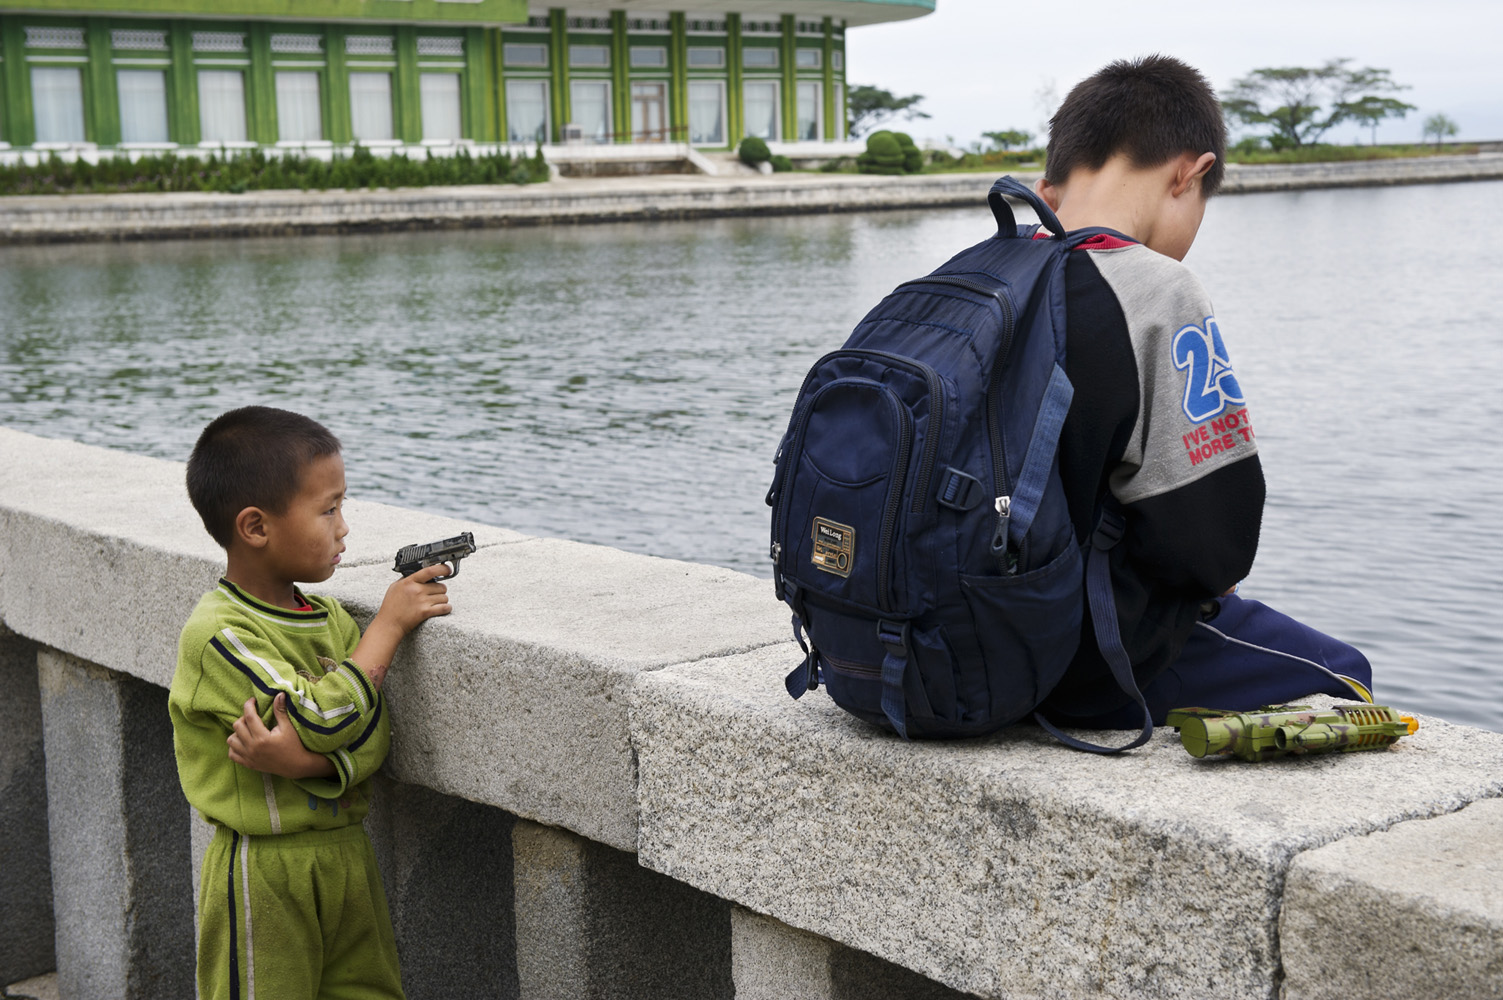 Kid playing with a toy gun in the harbour of Wŏnsan, North Korea.